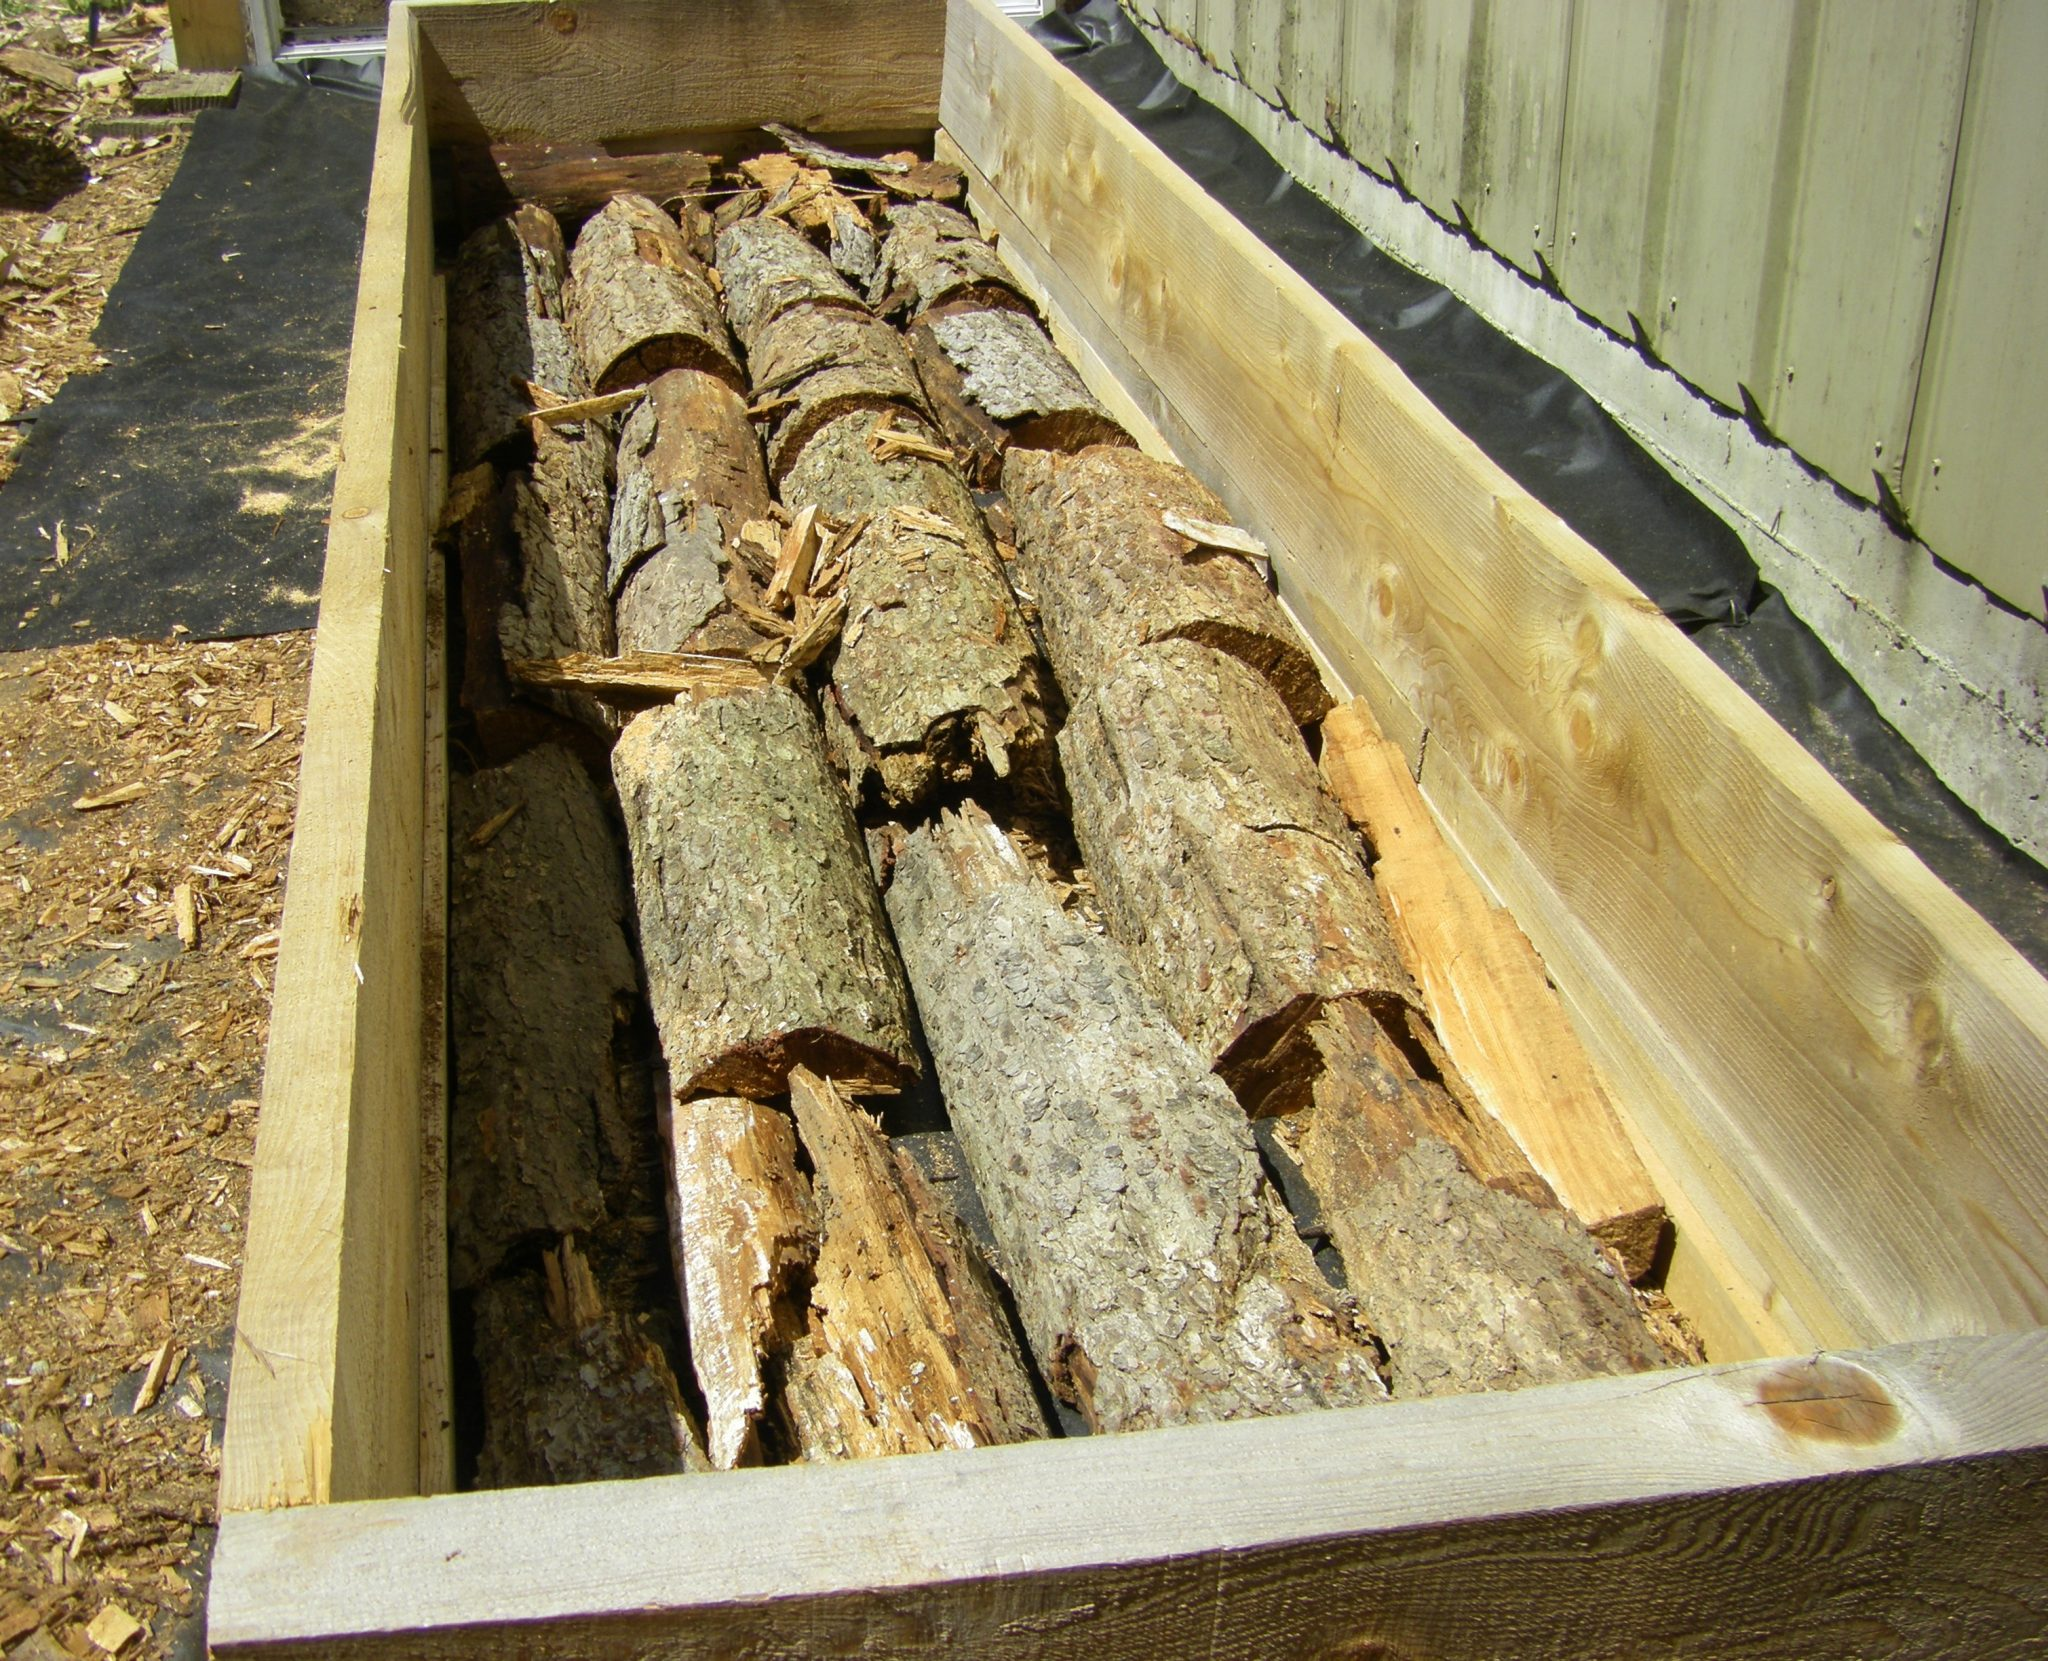 logs in bed to form hugelkultur